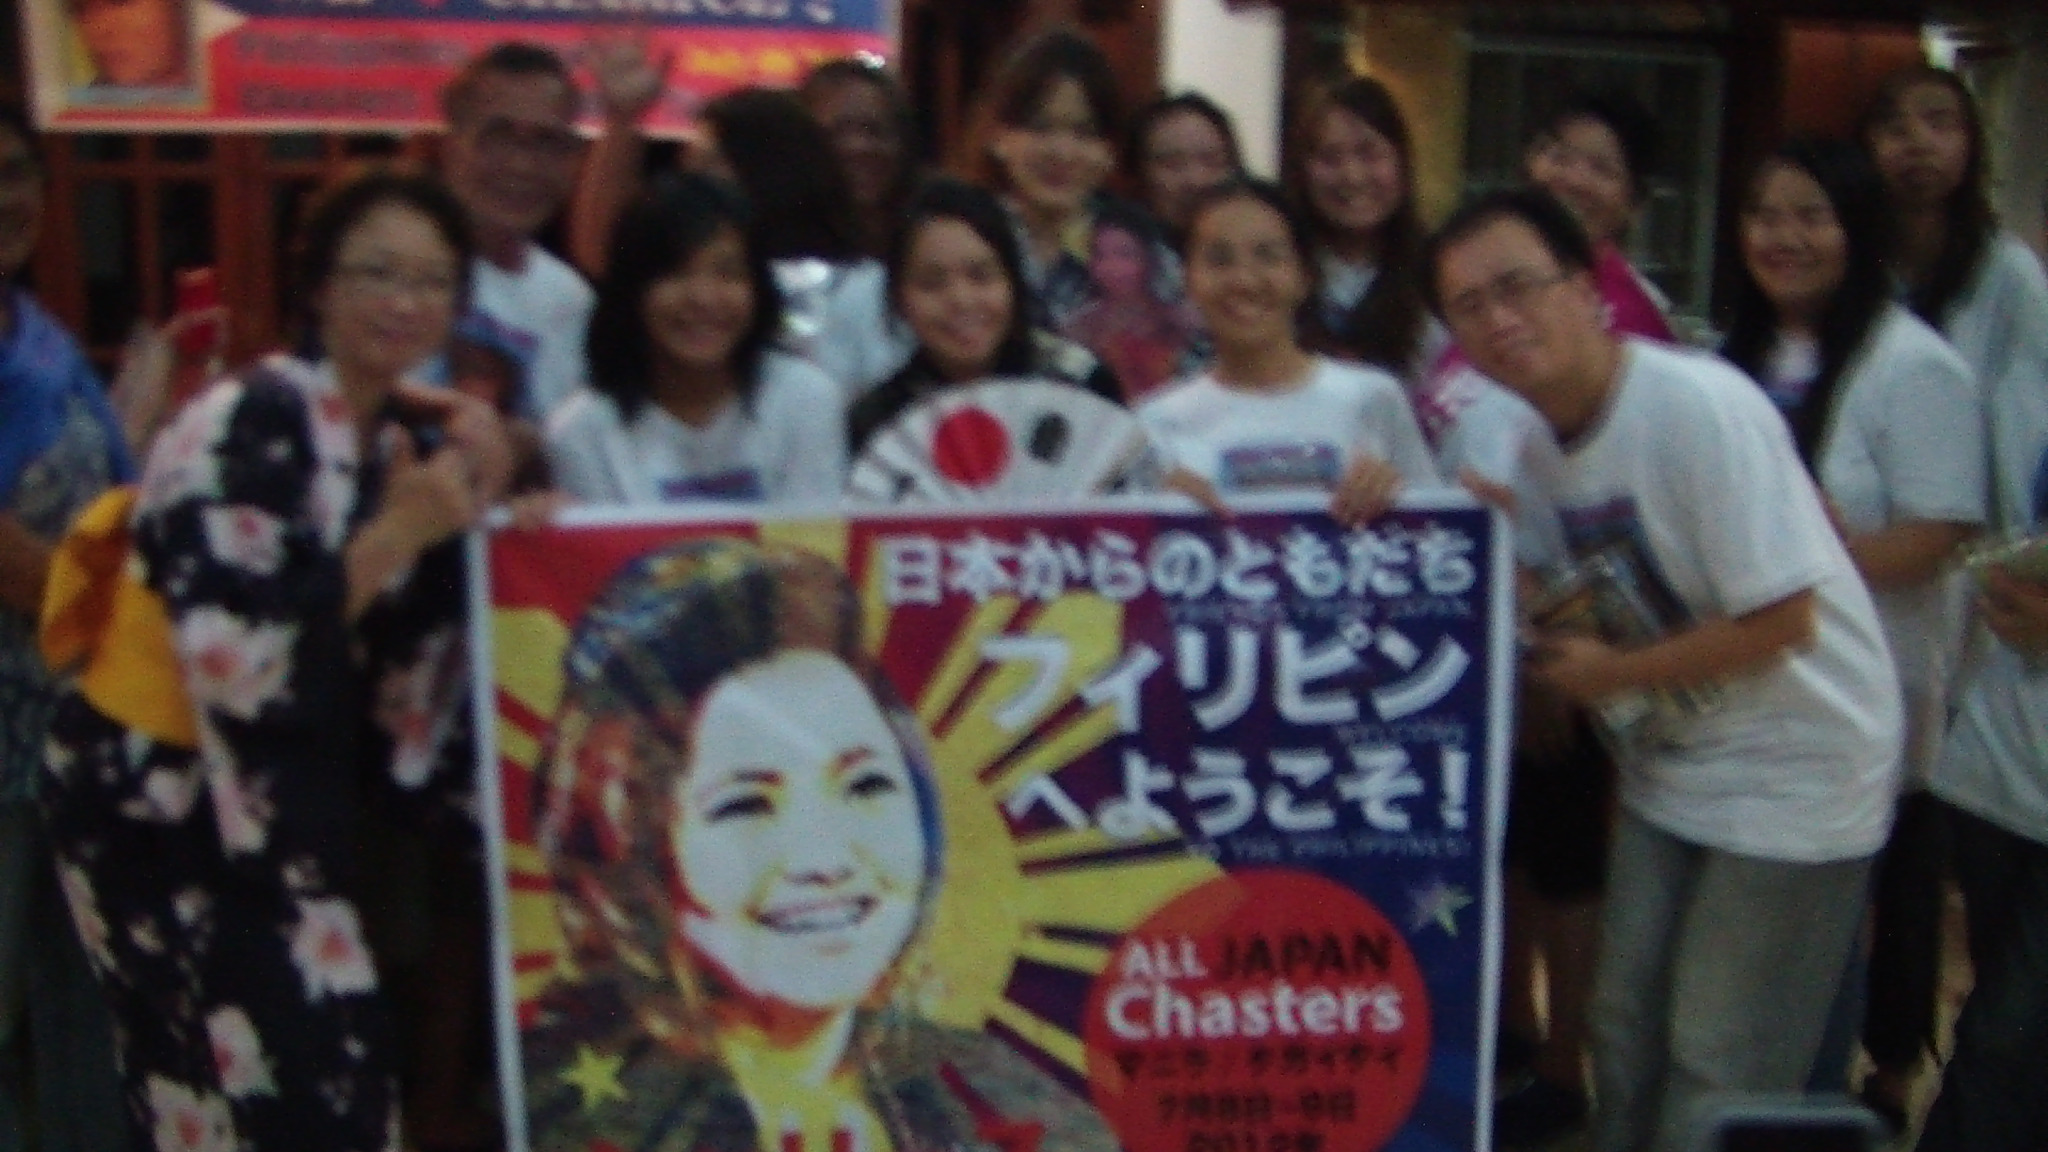 AJC visit to Philippines July 7-9, 2012 proves that Chasters love Chasters who love Charice who loves Chasters. Weh? http://t.co/t0Dr7f3B